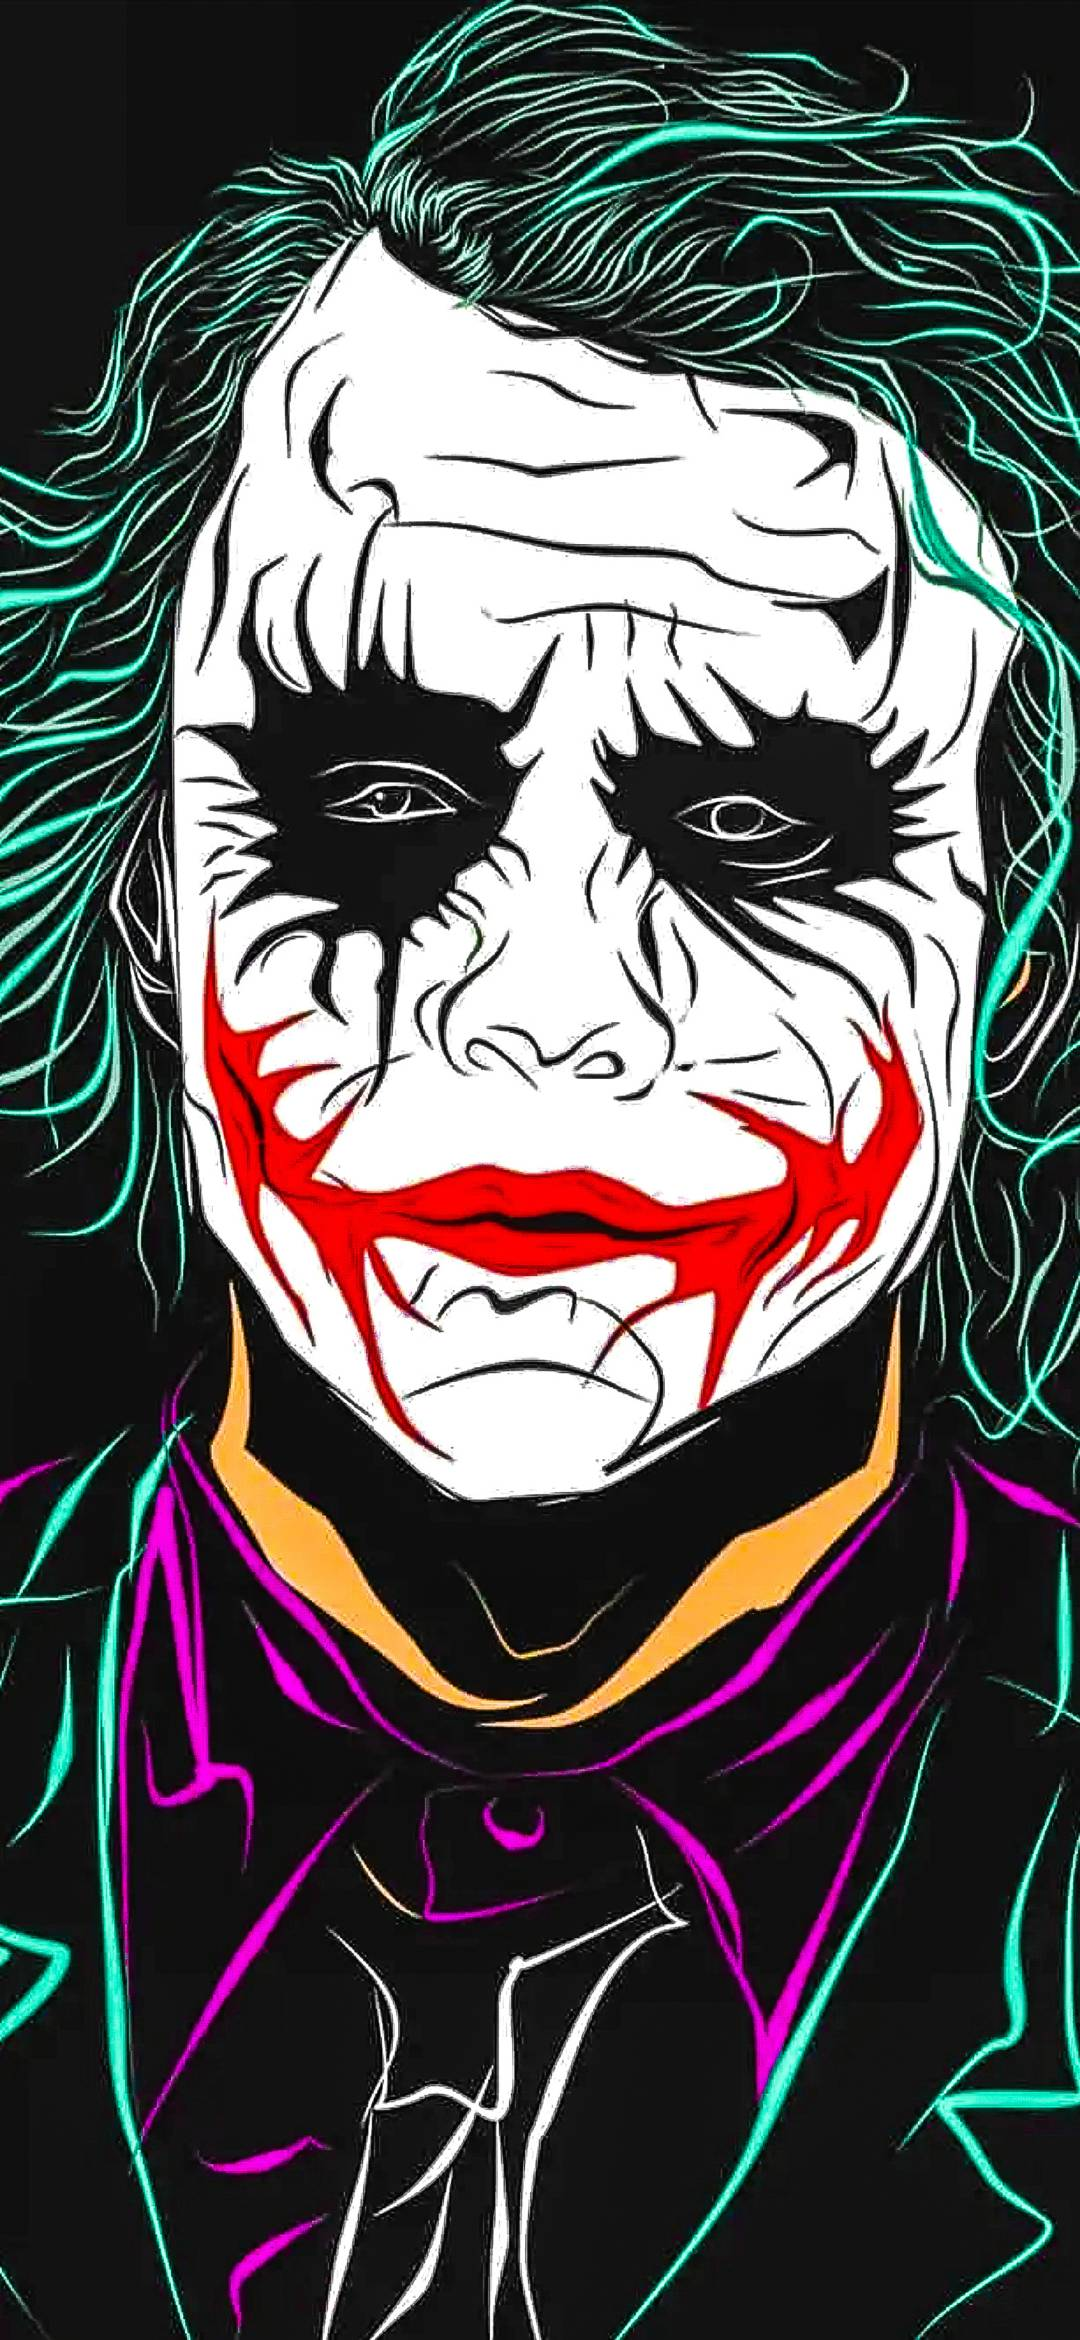 Joker Wallpapers Downlaod Joker Wallpaper Hd 2019 1080x2340 Wallpaper Teahub Io